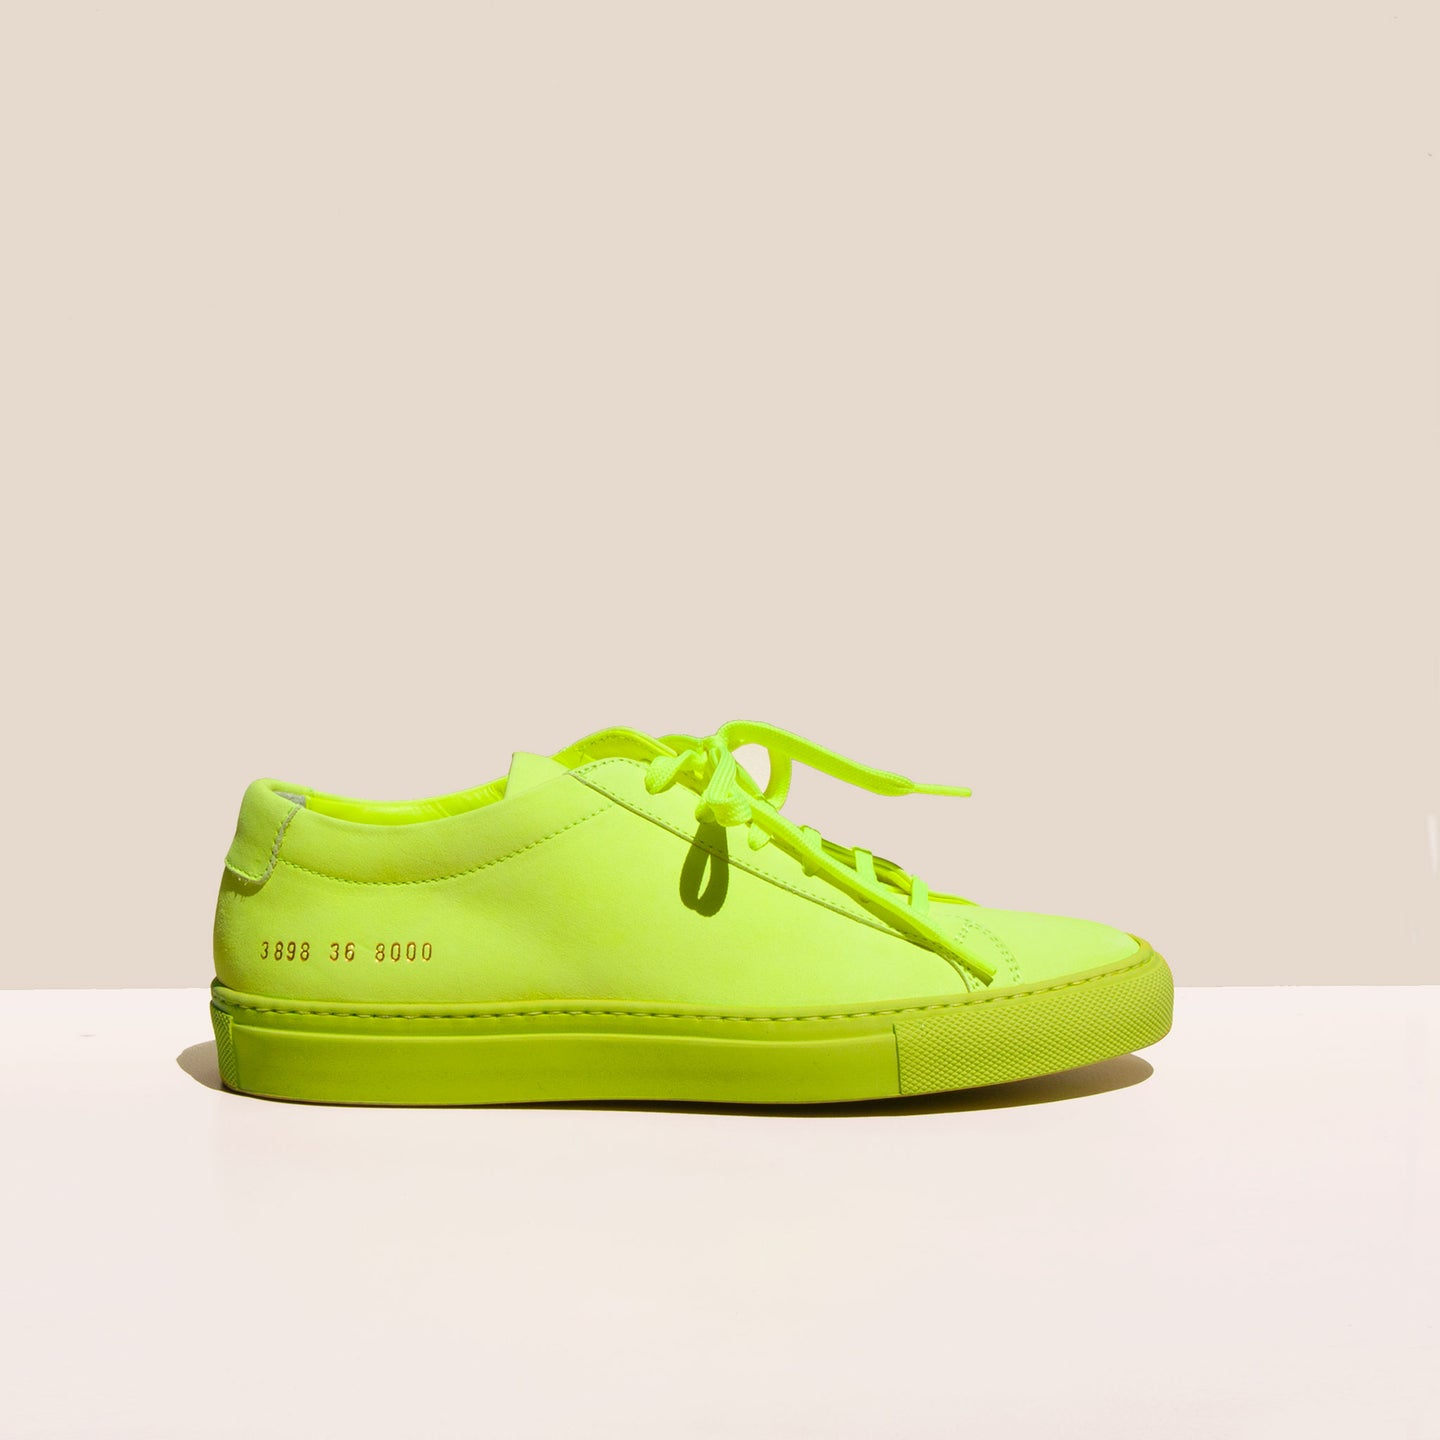 Original Achilles Low Fluo in Neon Yellow, side view, available at LCD.